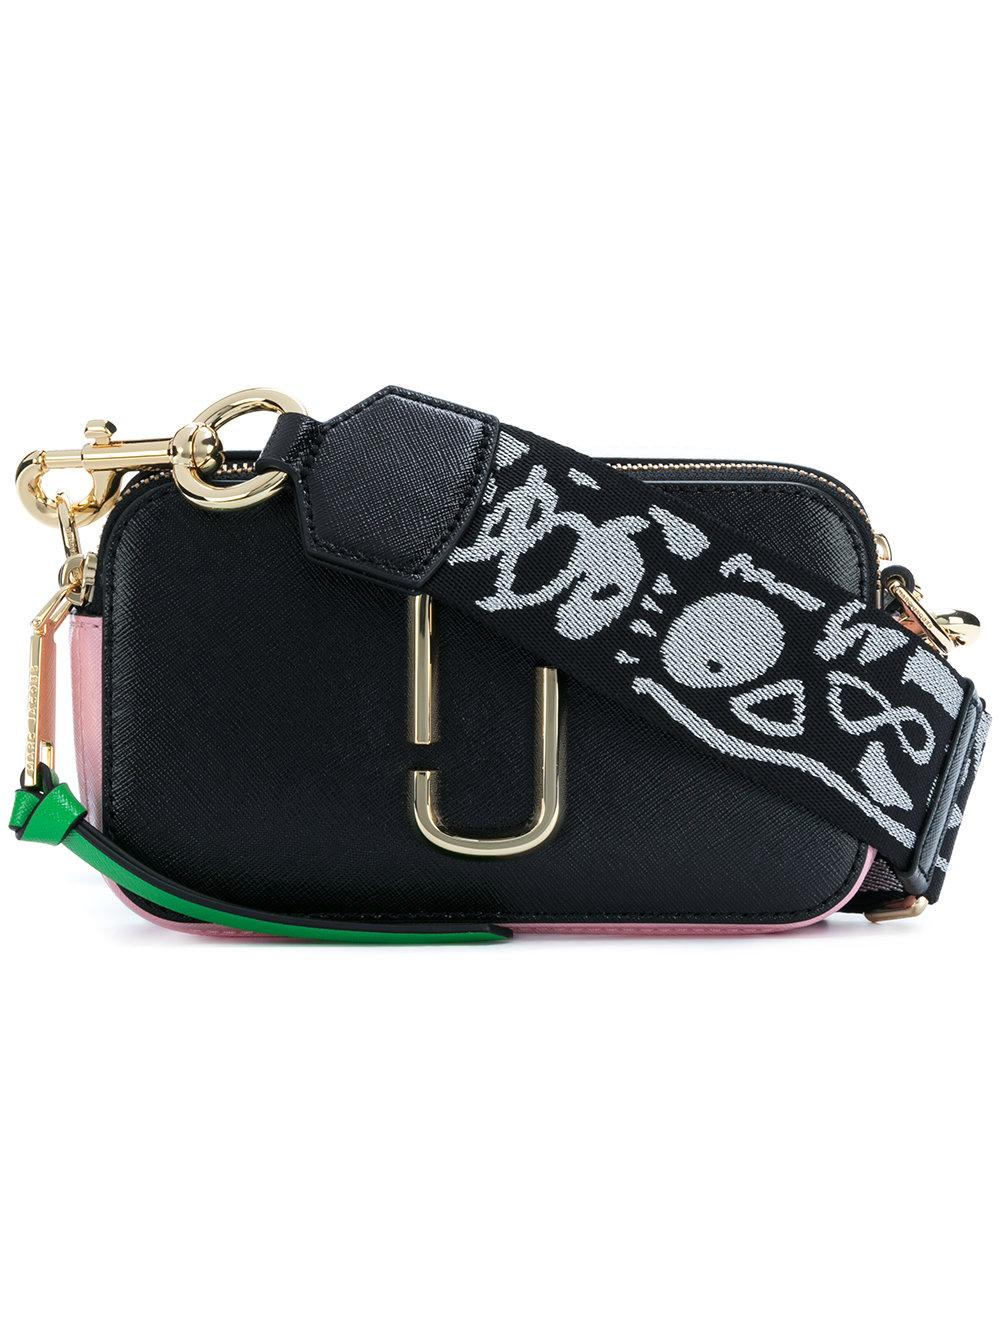 f96e2b302b9a32 Marc Jacobs Snapshot Colour-Block Leather Shoulder Bag In Black ...